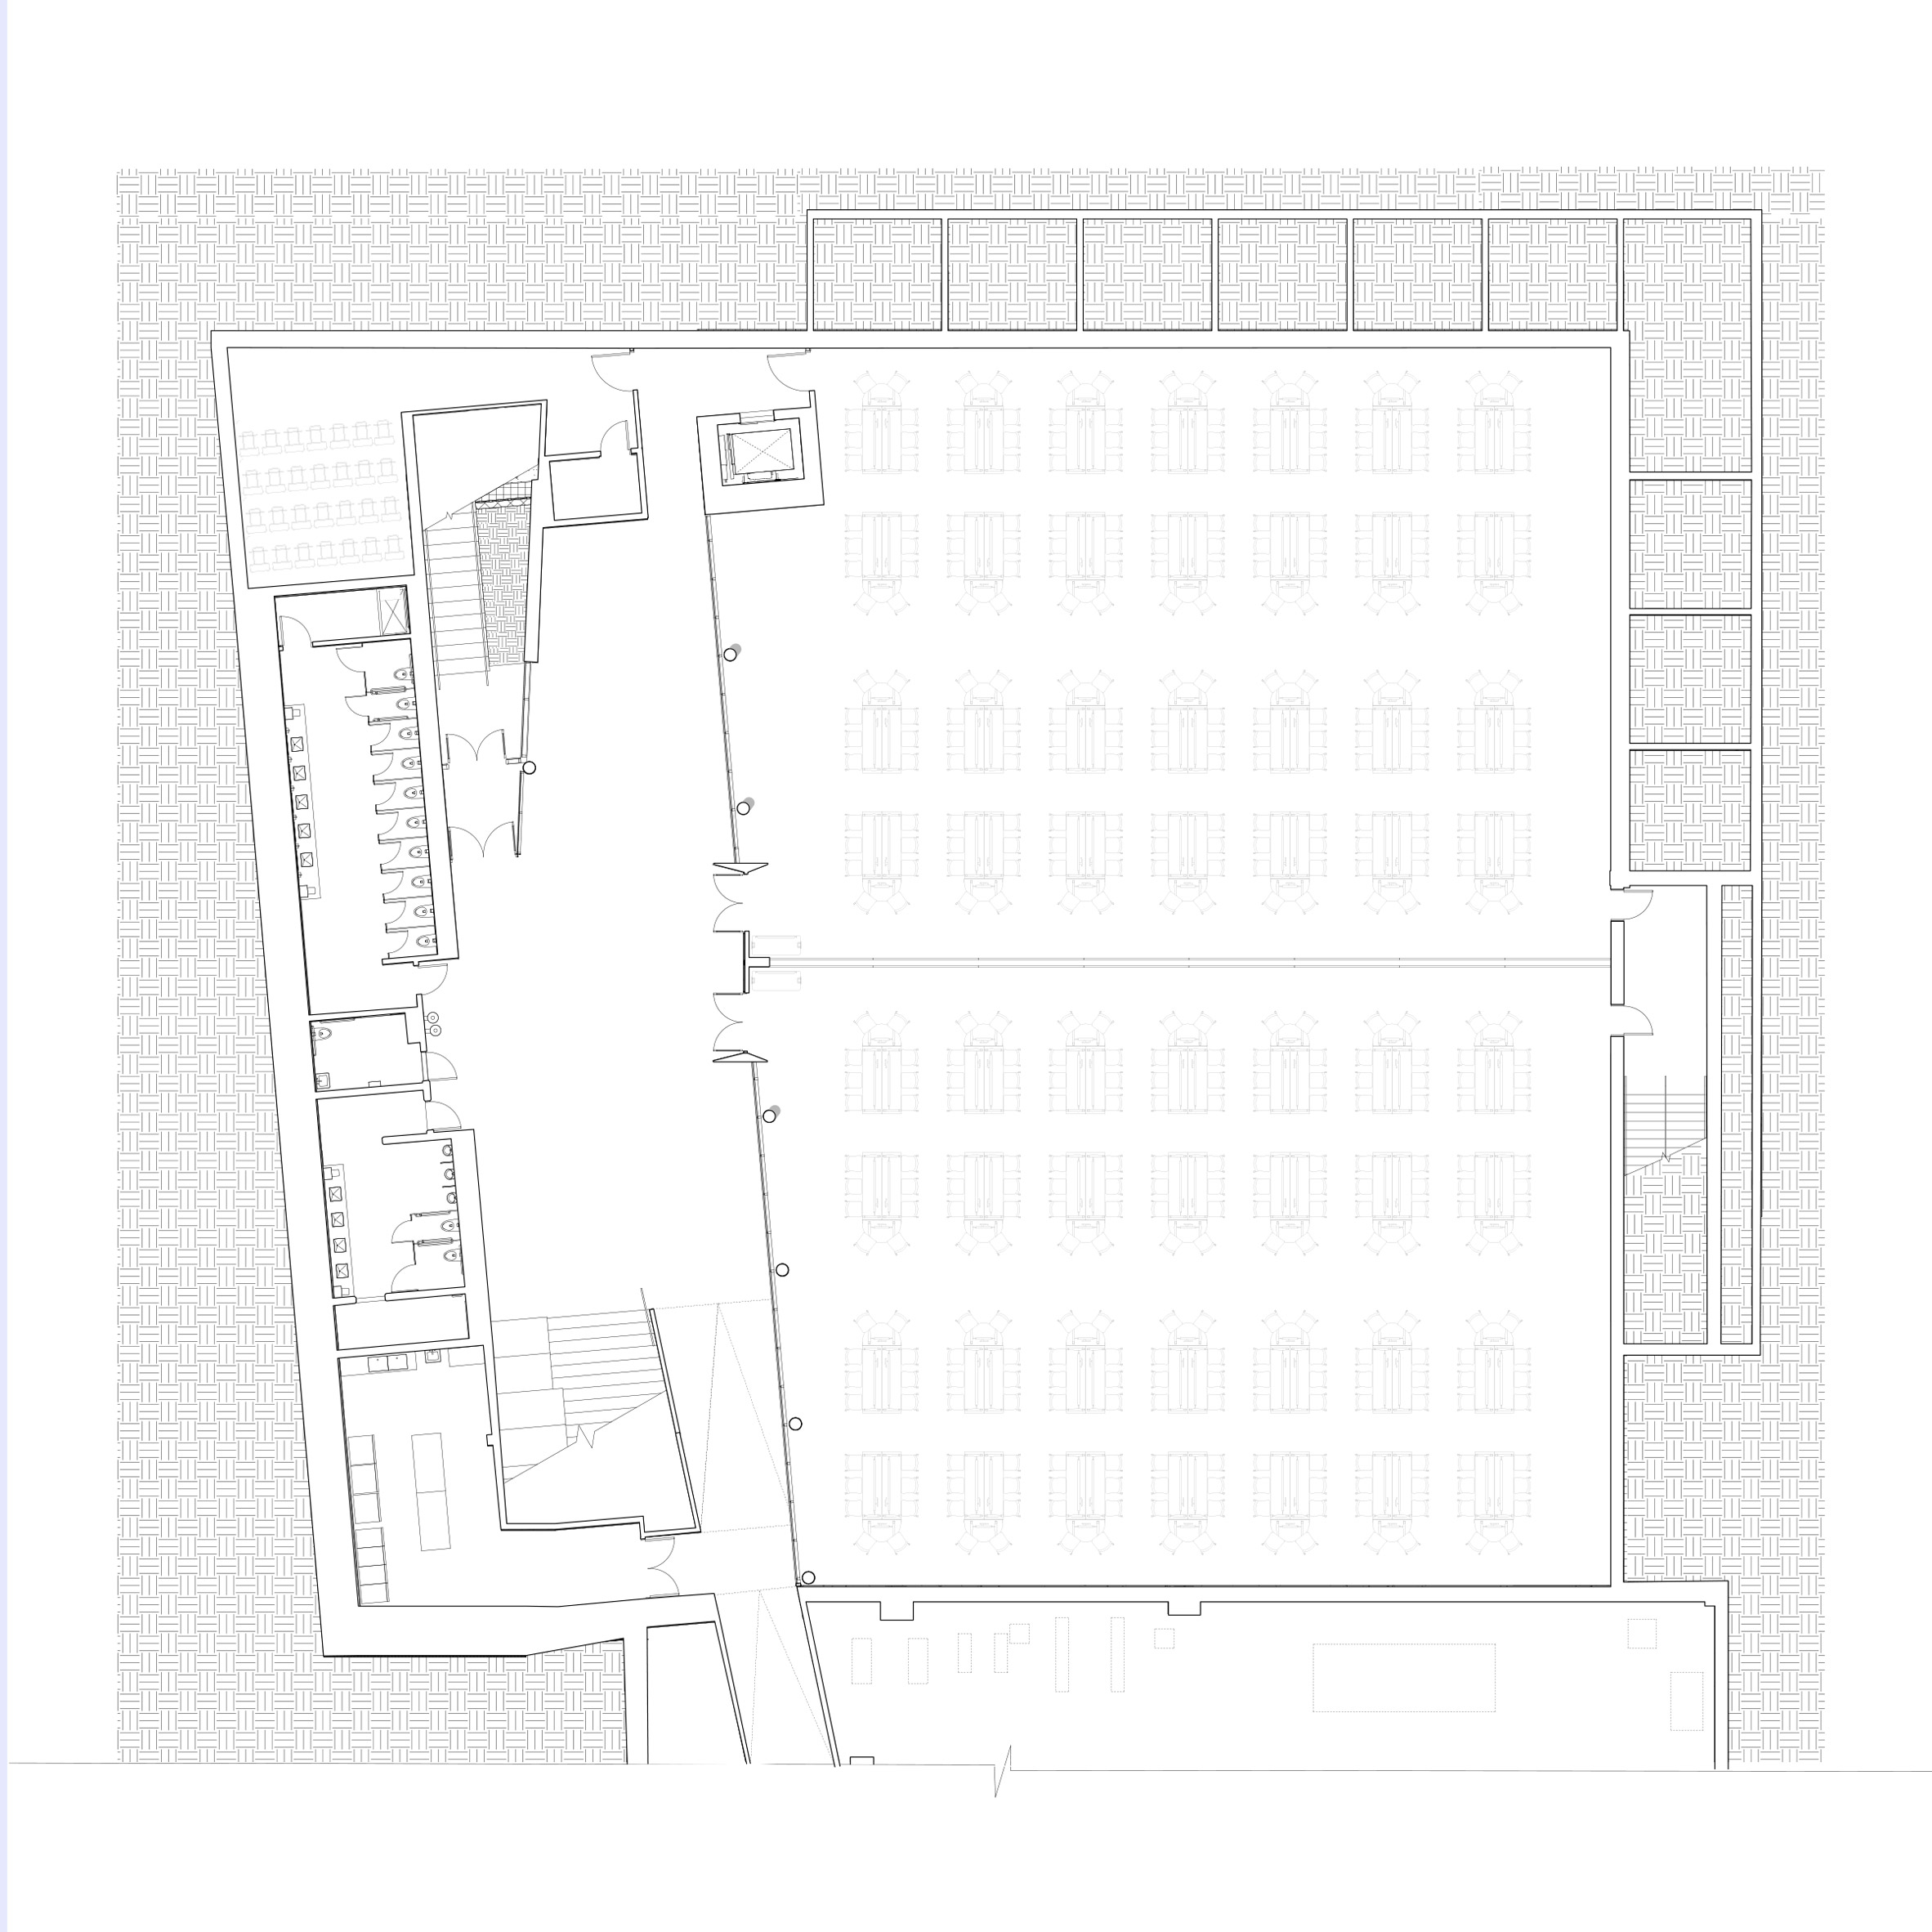 medical-center-university-of-kansas-co-architects-architecture-kansas-city-usa_dezeen_2364_lower-level-floor-plan.jpg